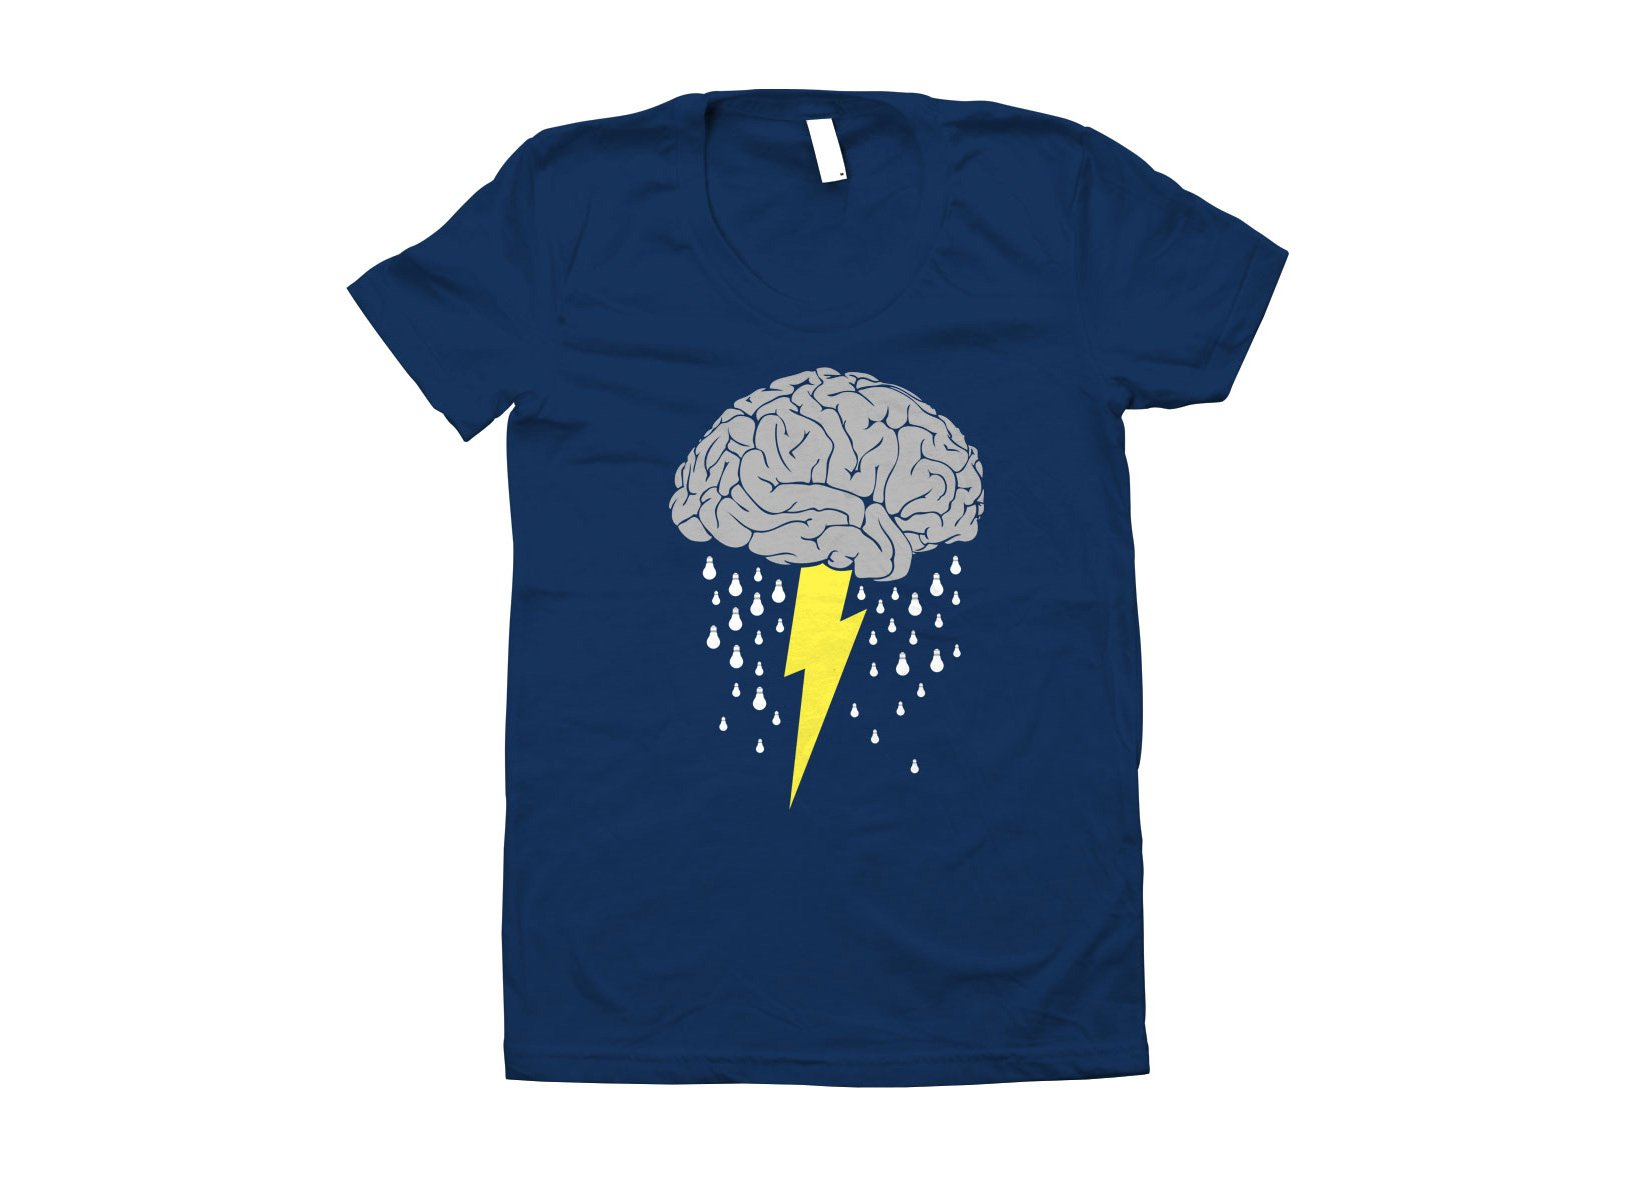 Brainstorm on Juniors T-Shirt